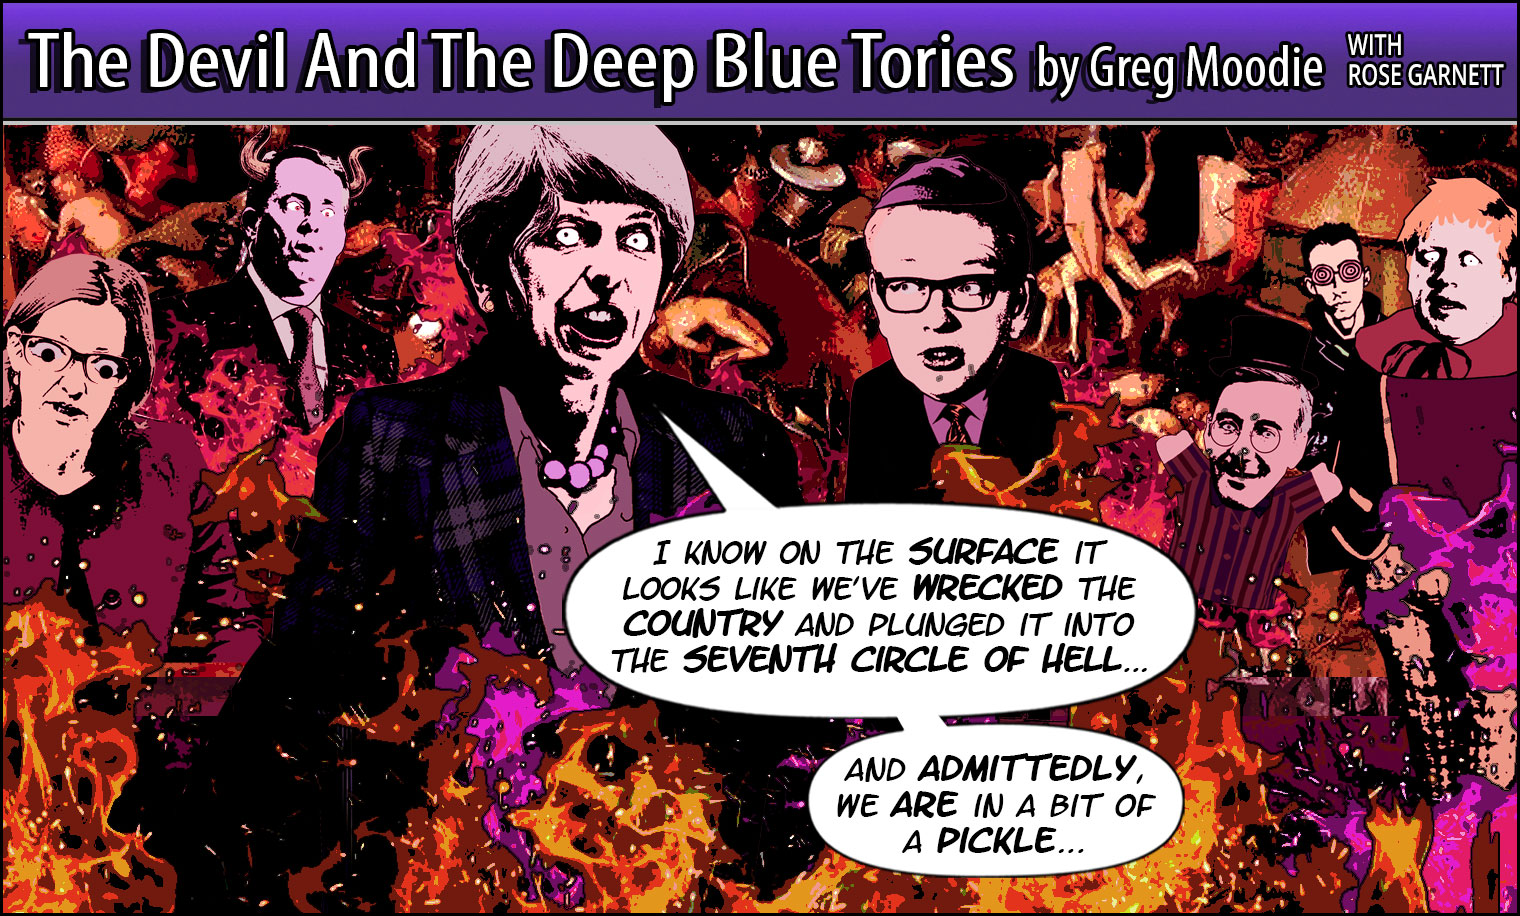 The Devil And The Deep Blue Tories